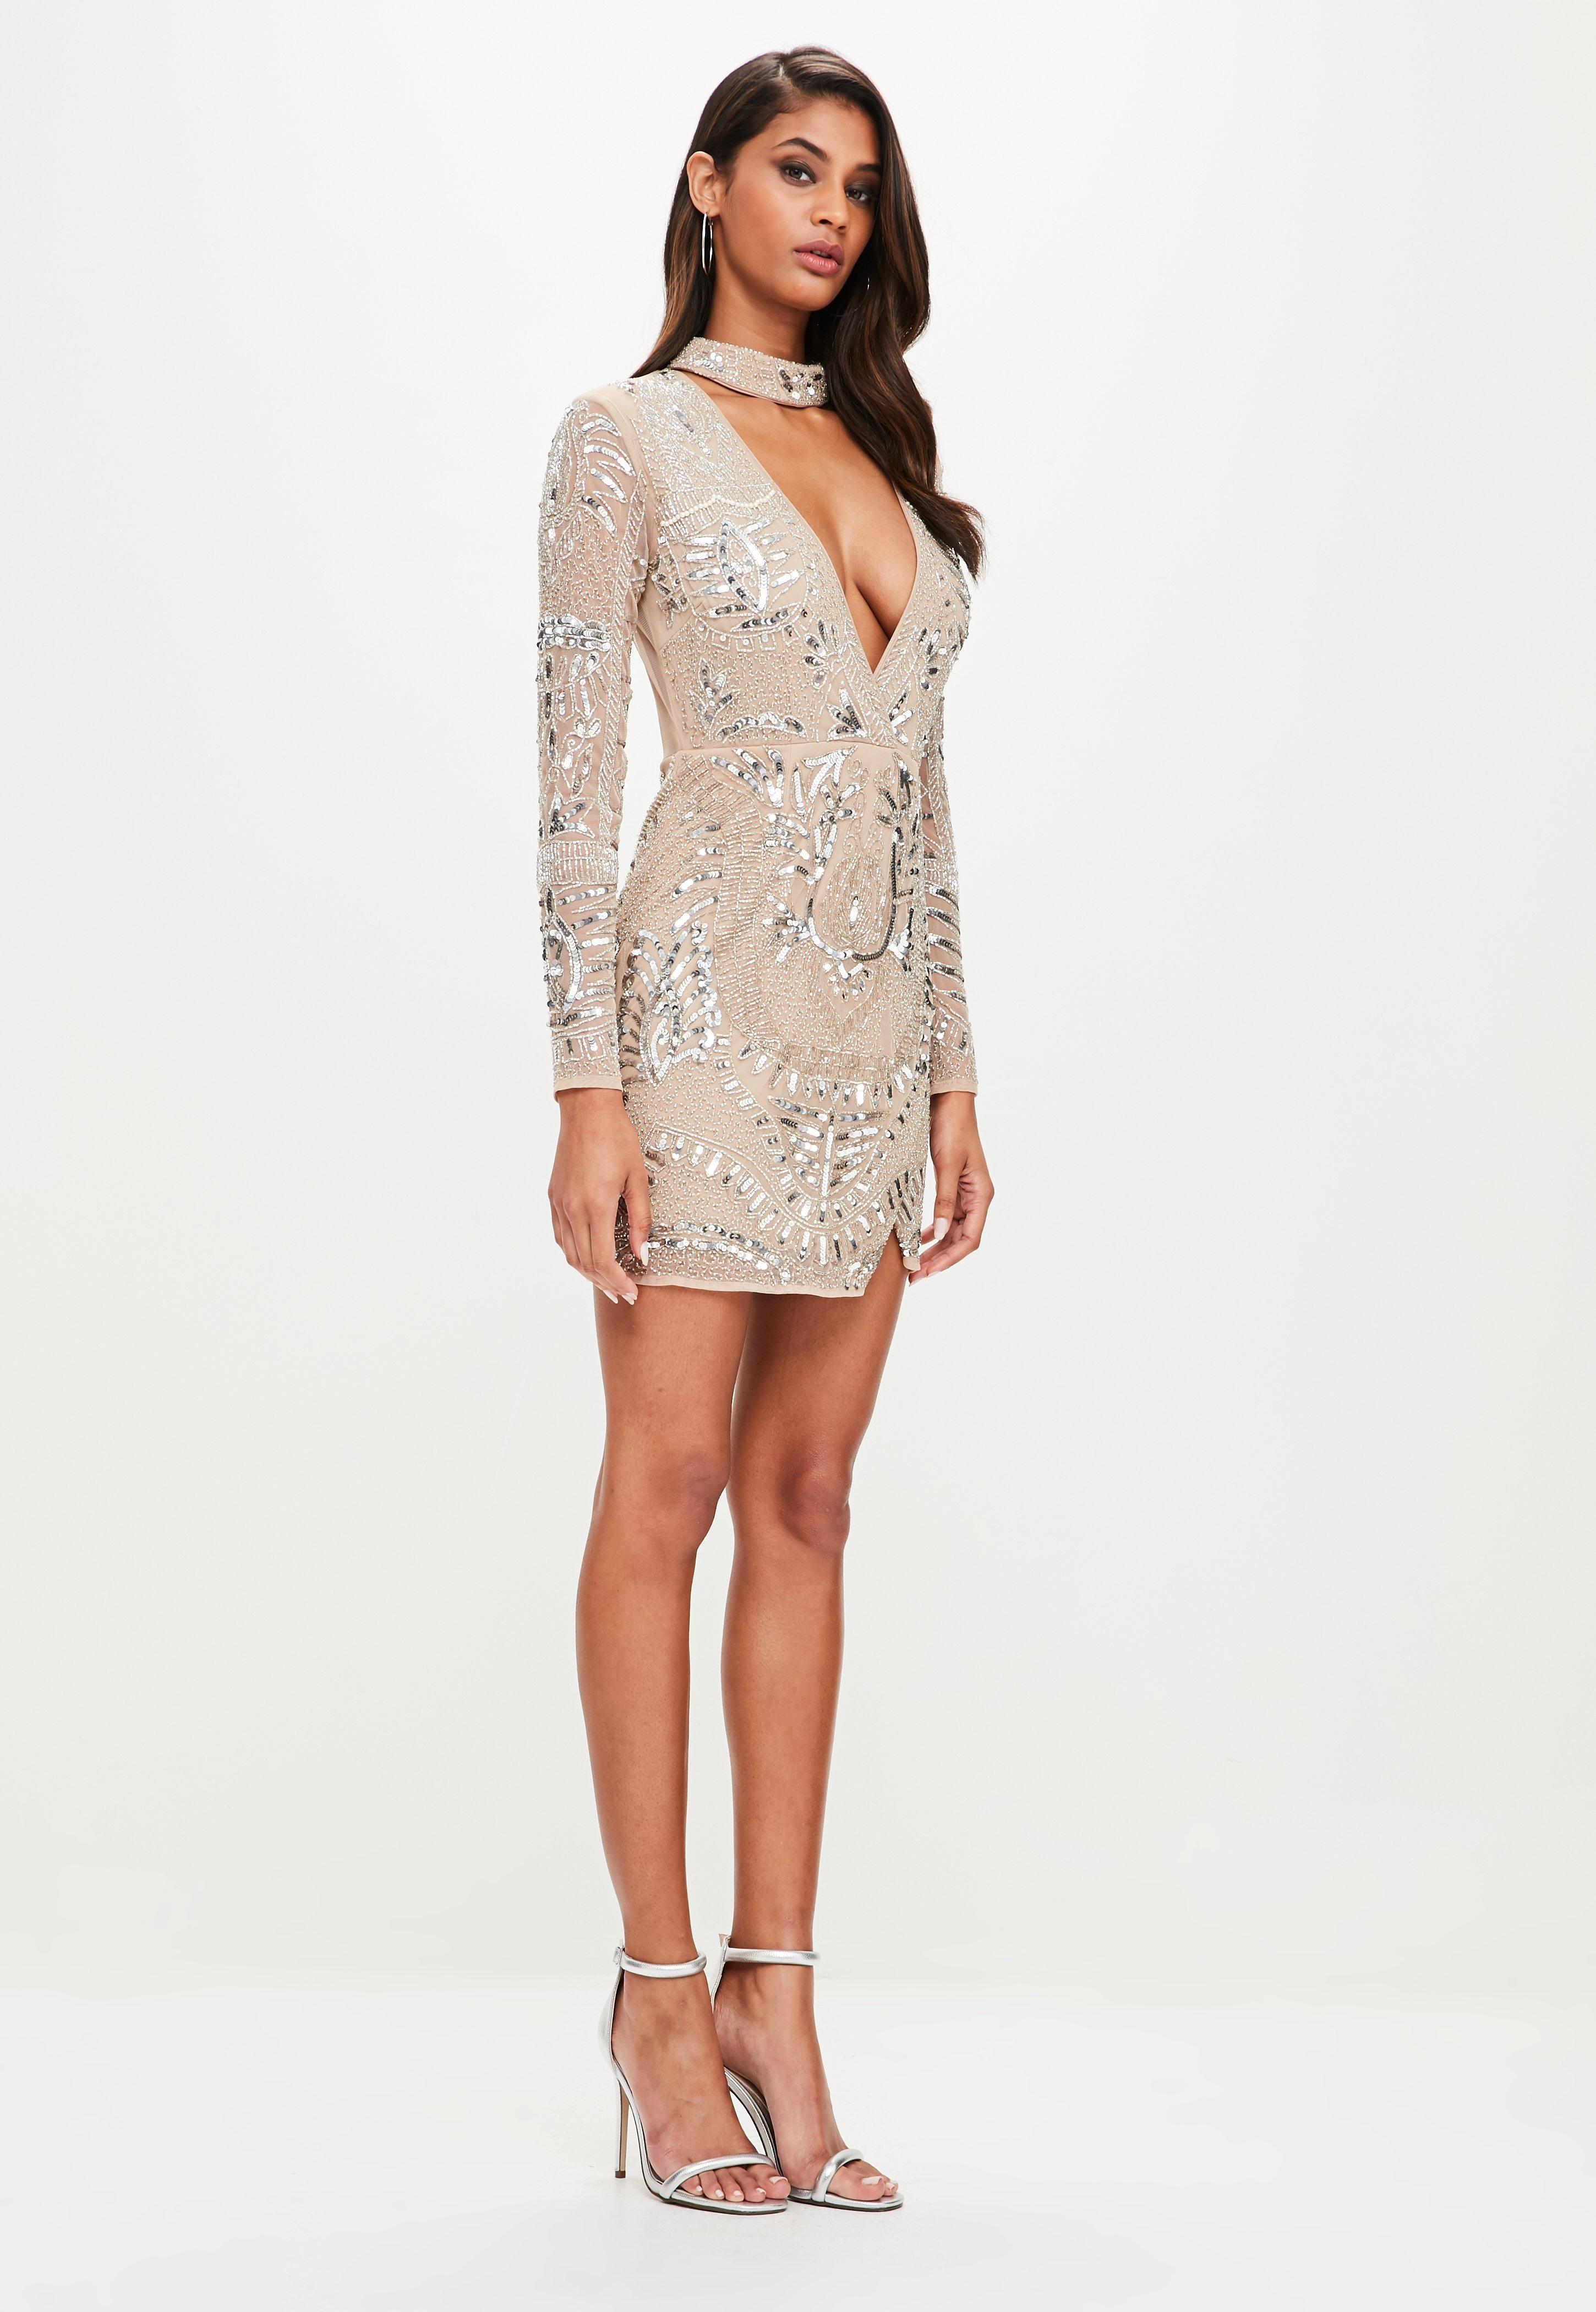 Peace Love Silver Choker Neck Embellished Dress - Silver Missguided Xoasia